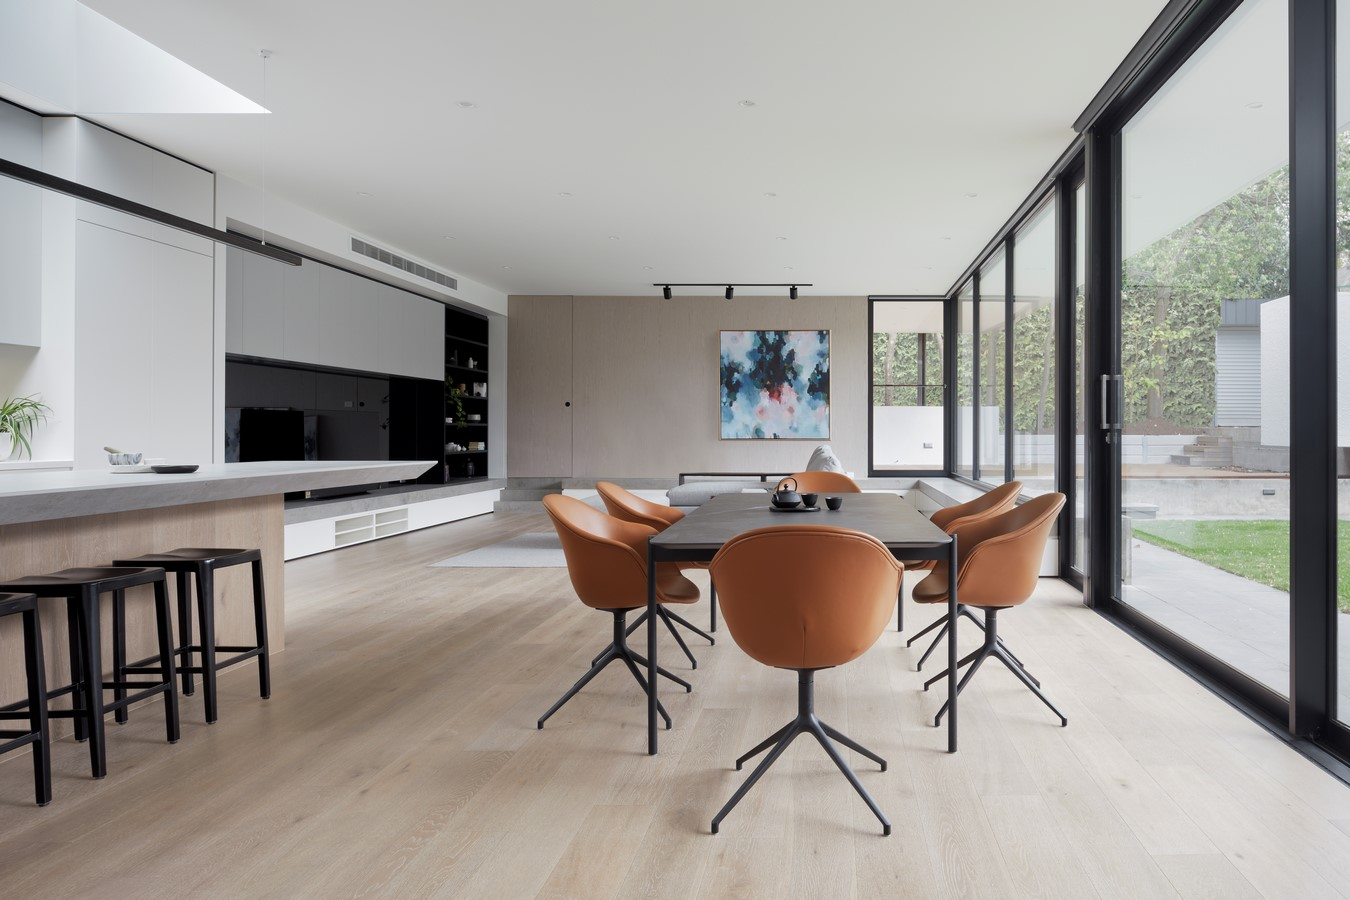 Robinson Rd House by Chan Architecture Pty Ltd - Sheet1